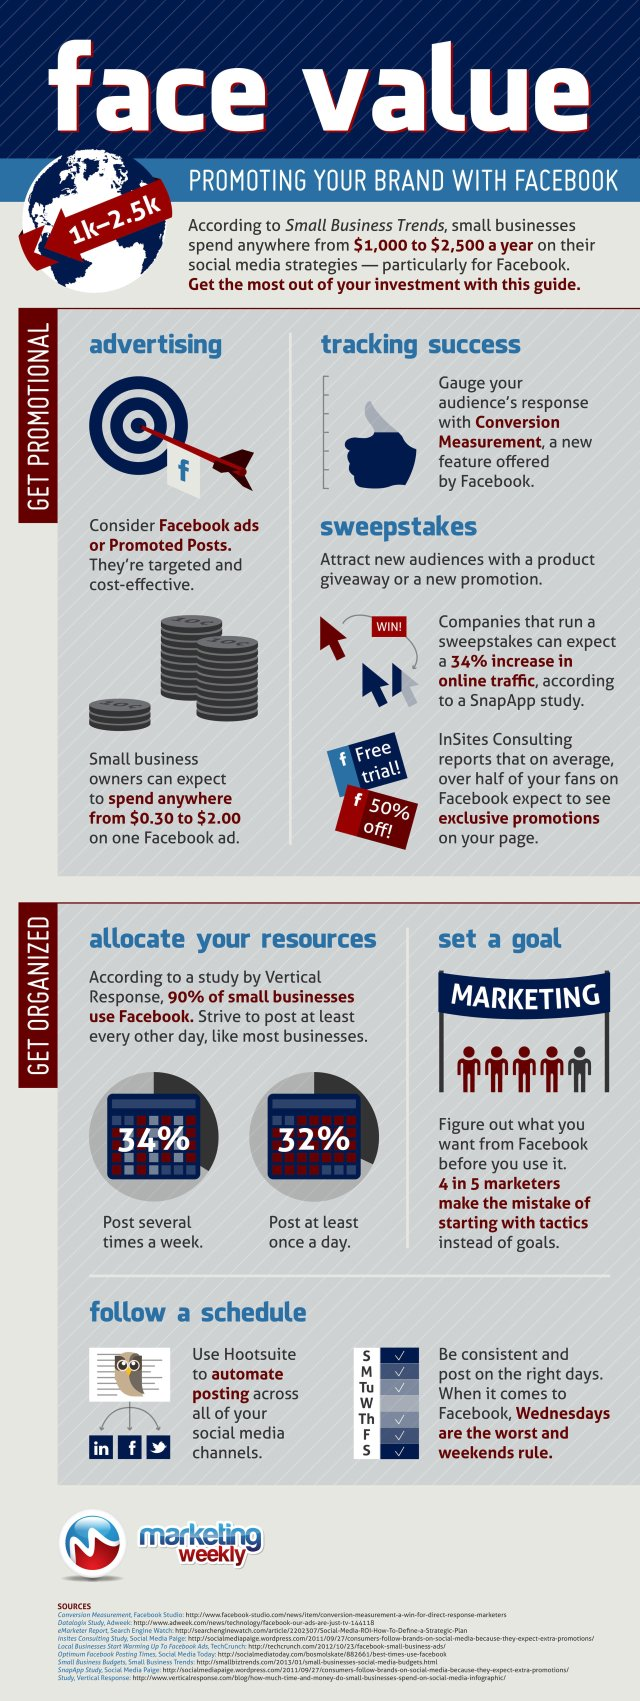 MARKETING WEEKLY INFOGRAPHIC